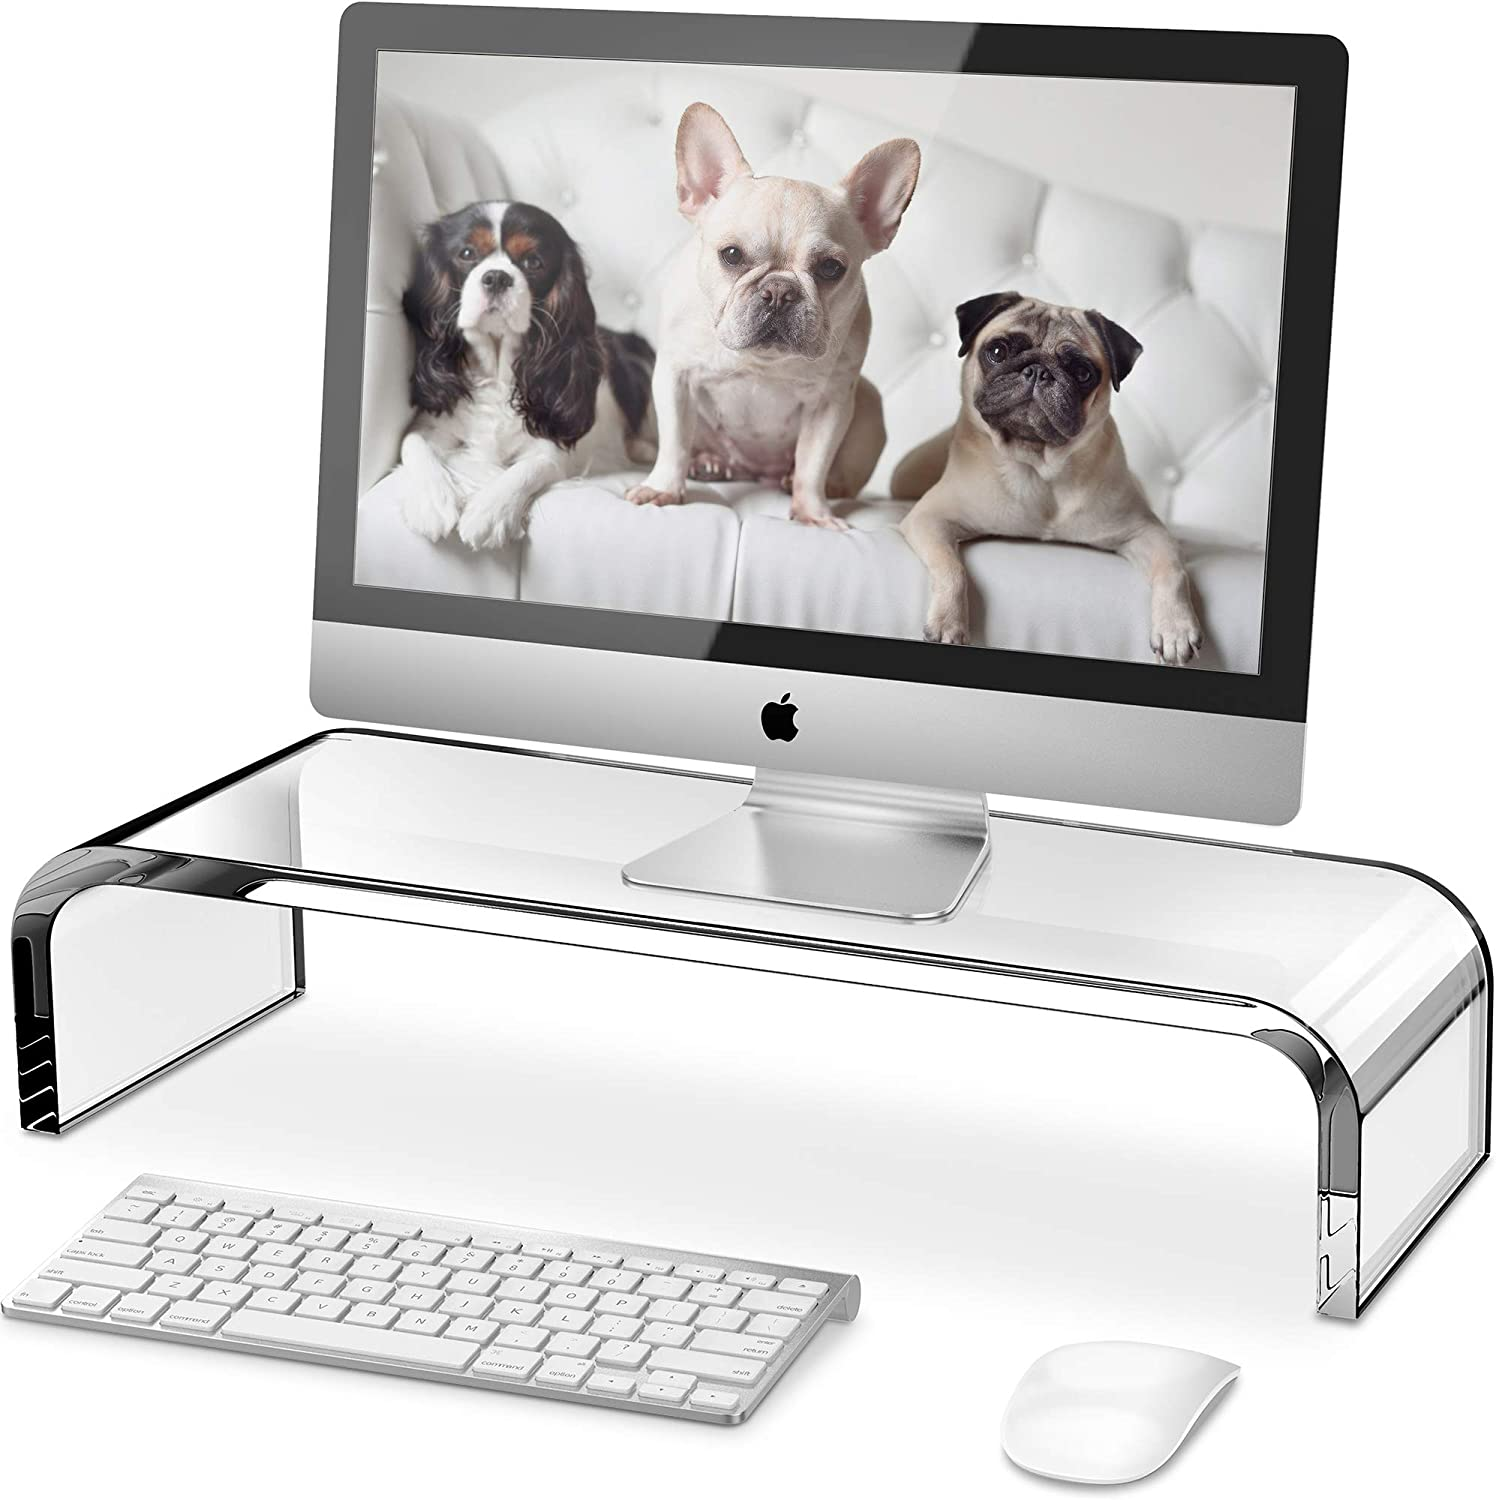 Clear Monitor Riser, QooWare Acrylic Computer Stand - HD Sturdy 50LB Max - Promotes Pain Relief Posture & Free Up Cluttered Space with TV, Laptop & PC Computer & Desk Storage Organizer Stand Riser